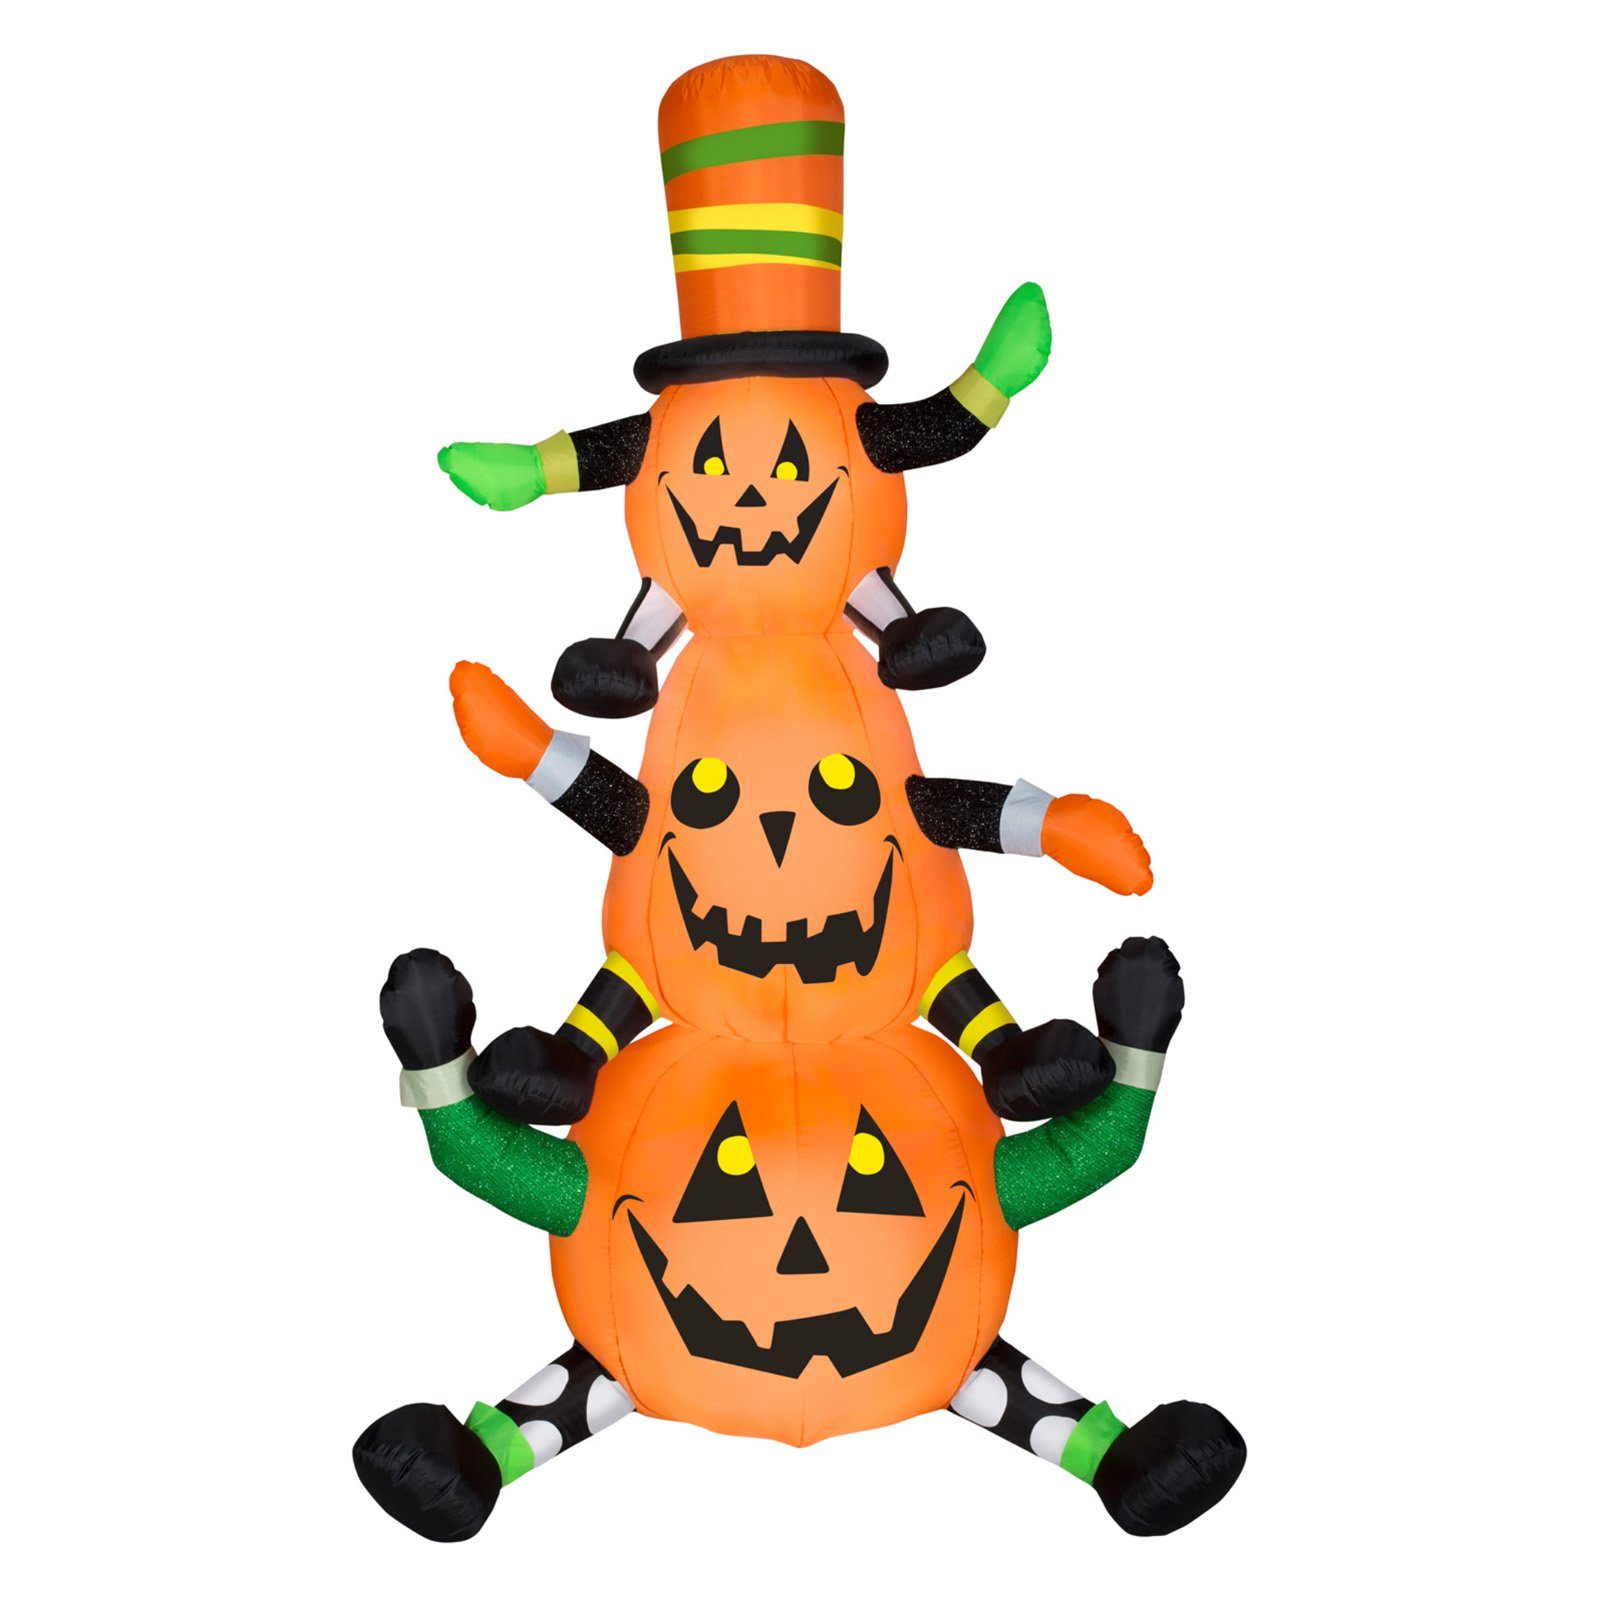 Airblown Inflatables Animated Whimsy Pumpkin Stack Inflatable